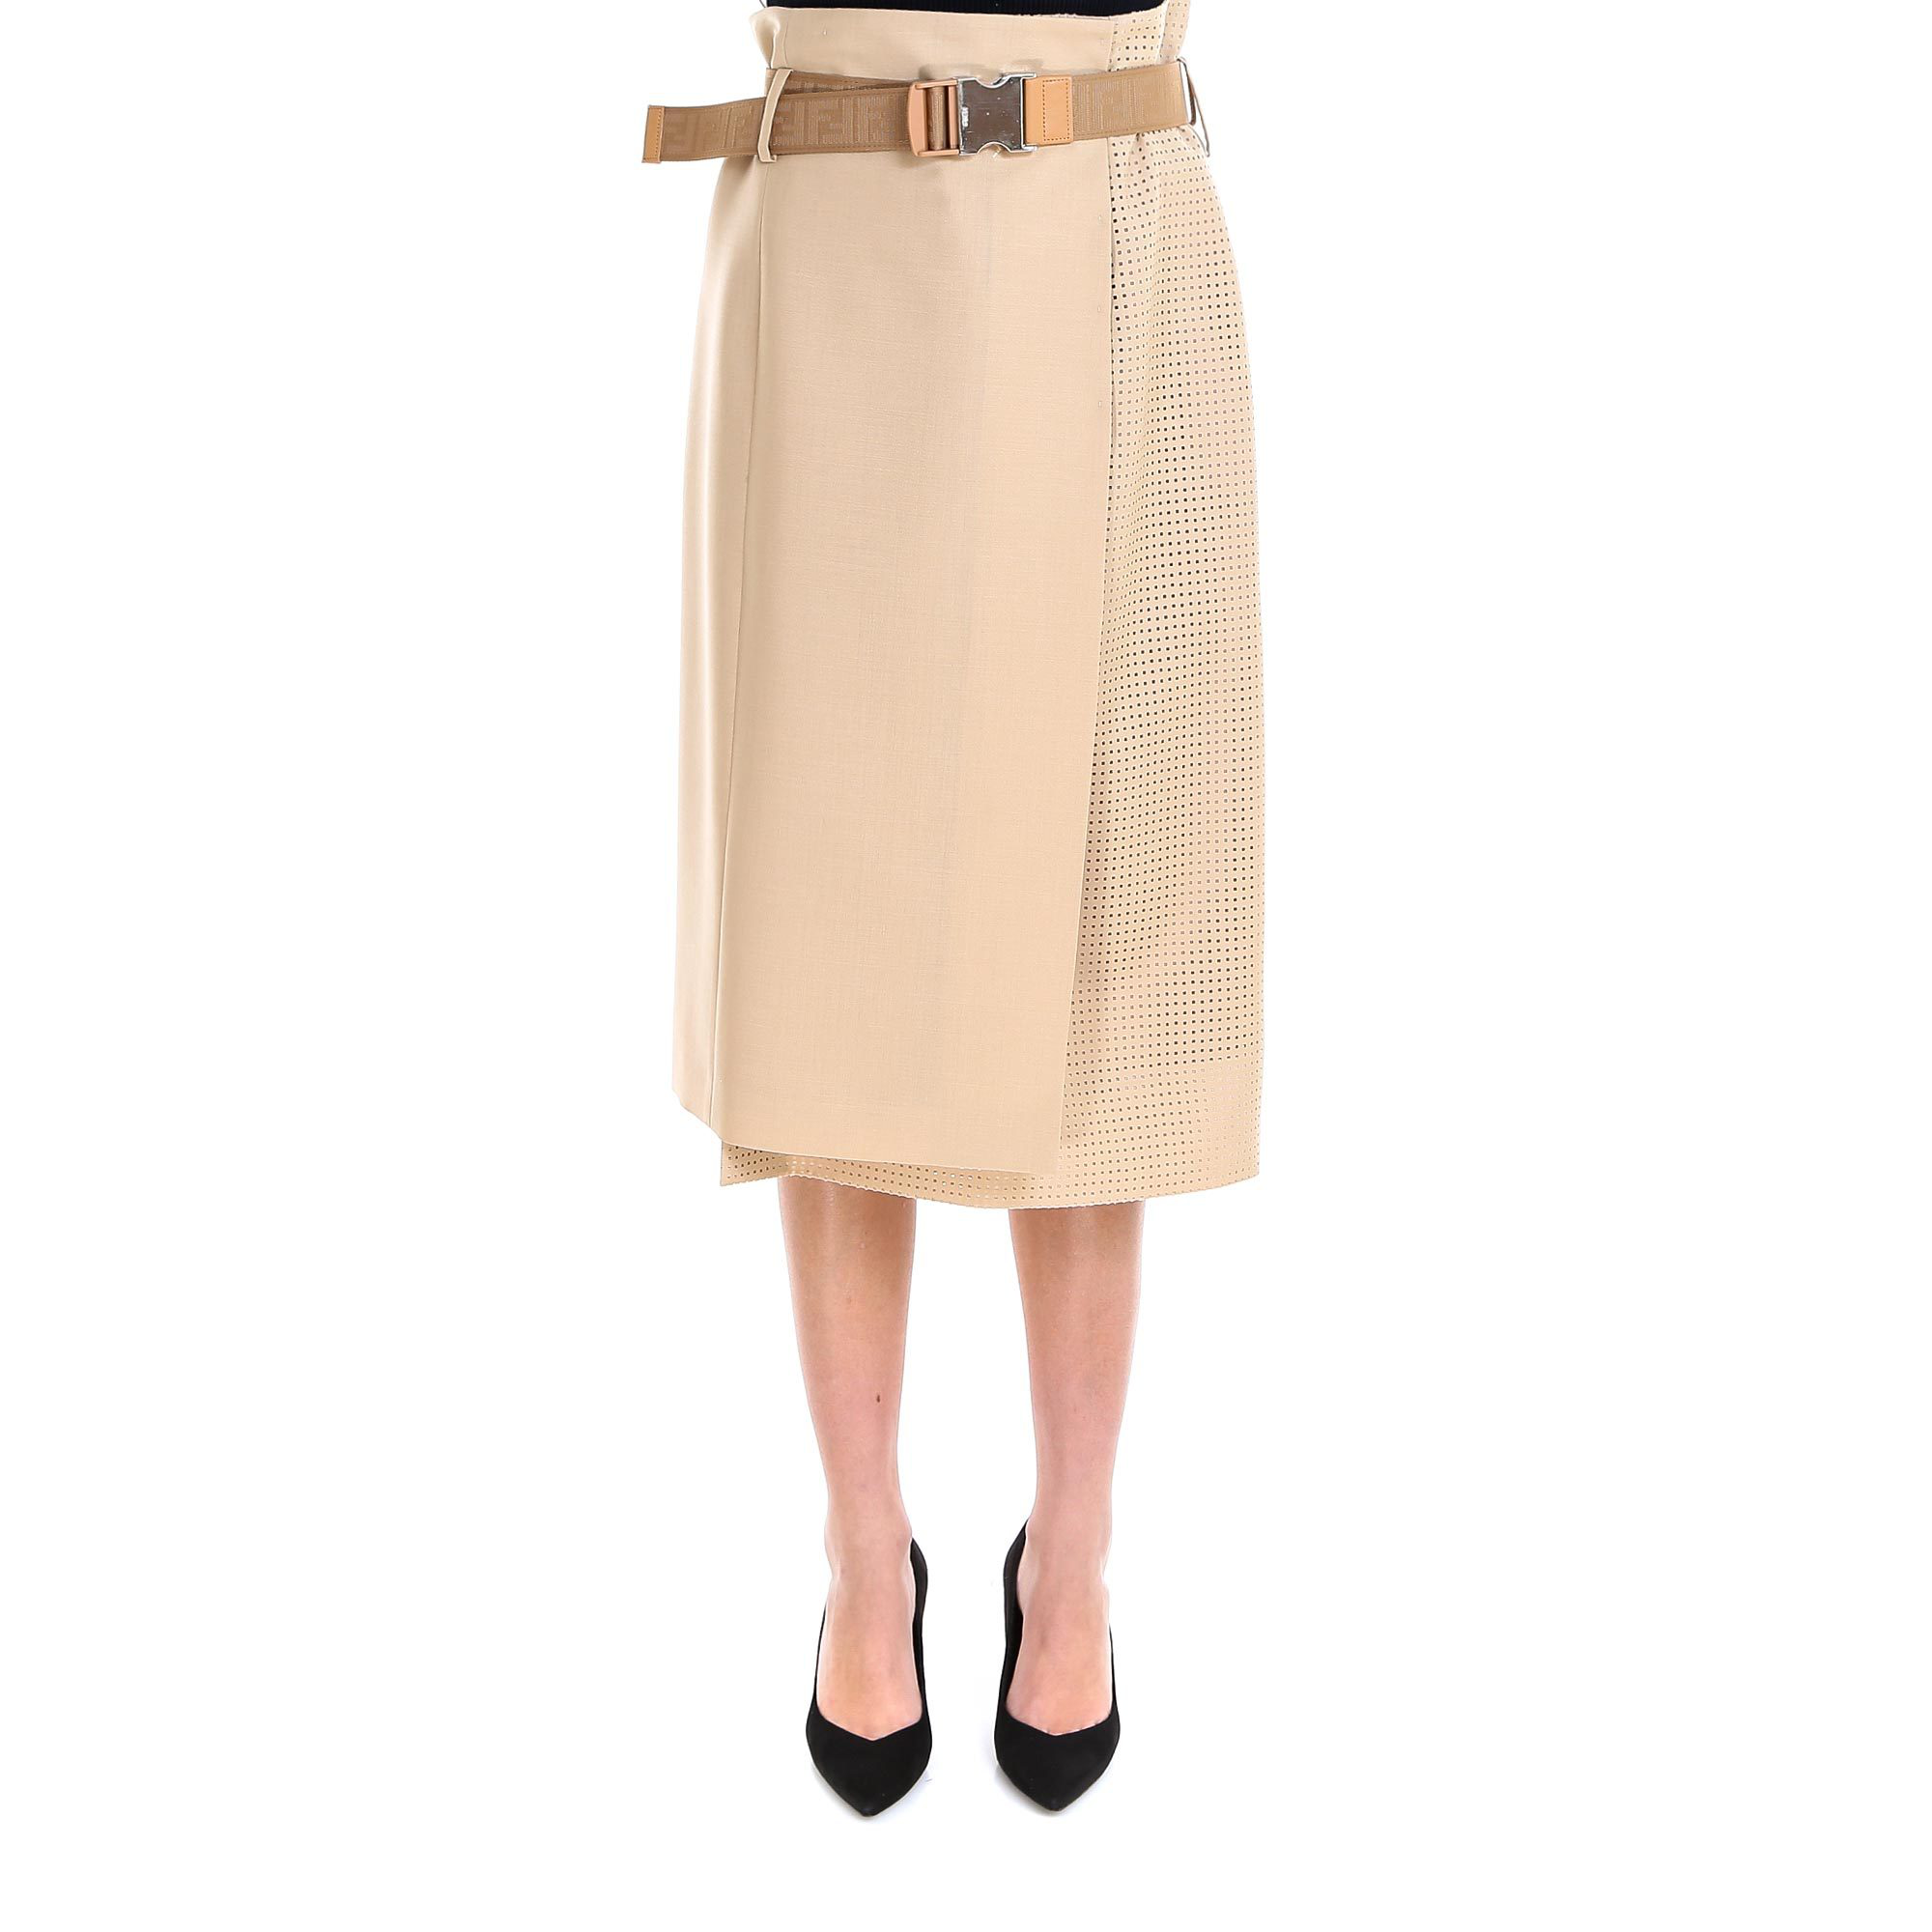 8d687d26308d02 Fendi Belted Midi Skirt In Beige | ModeSens